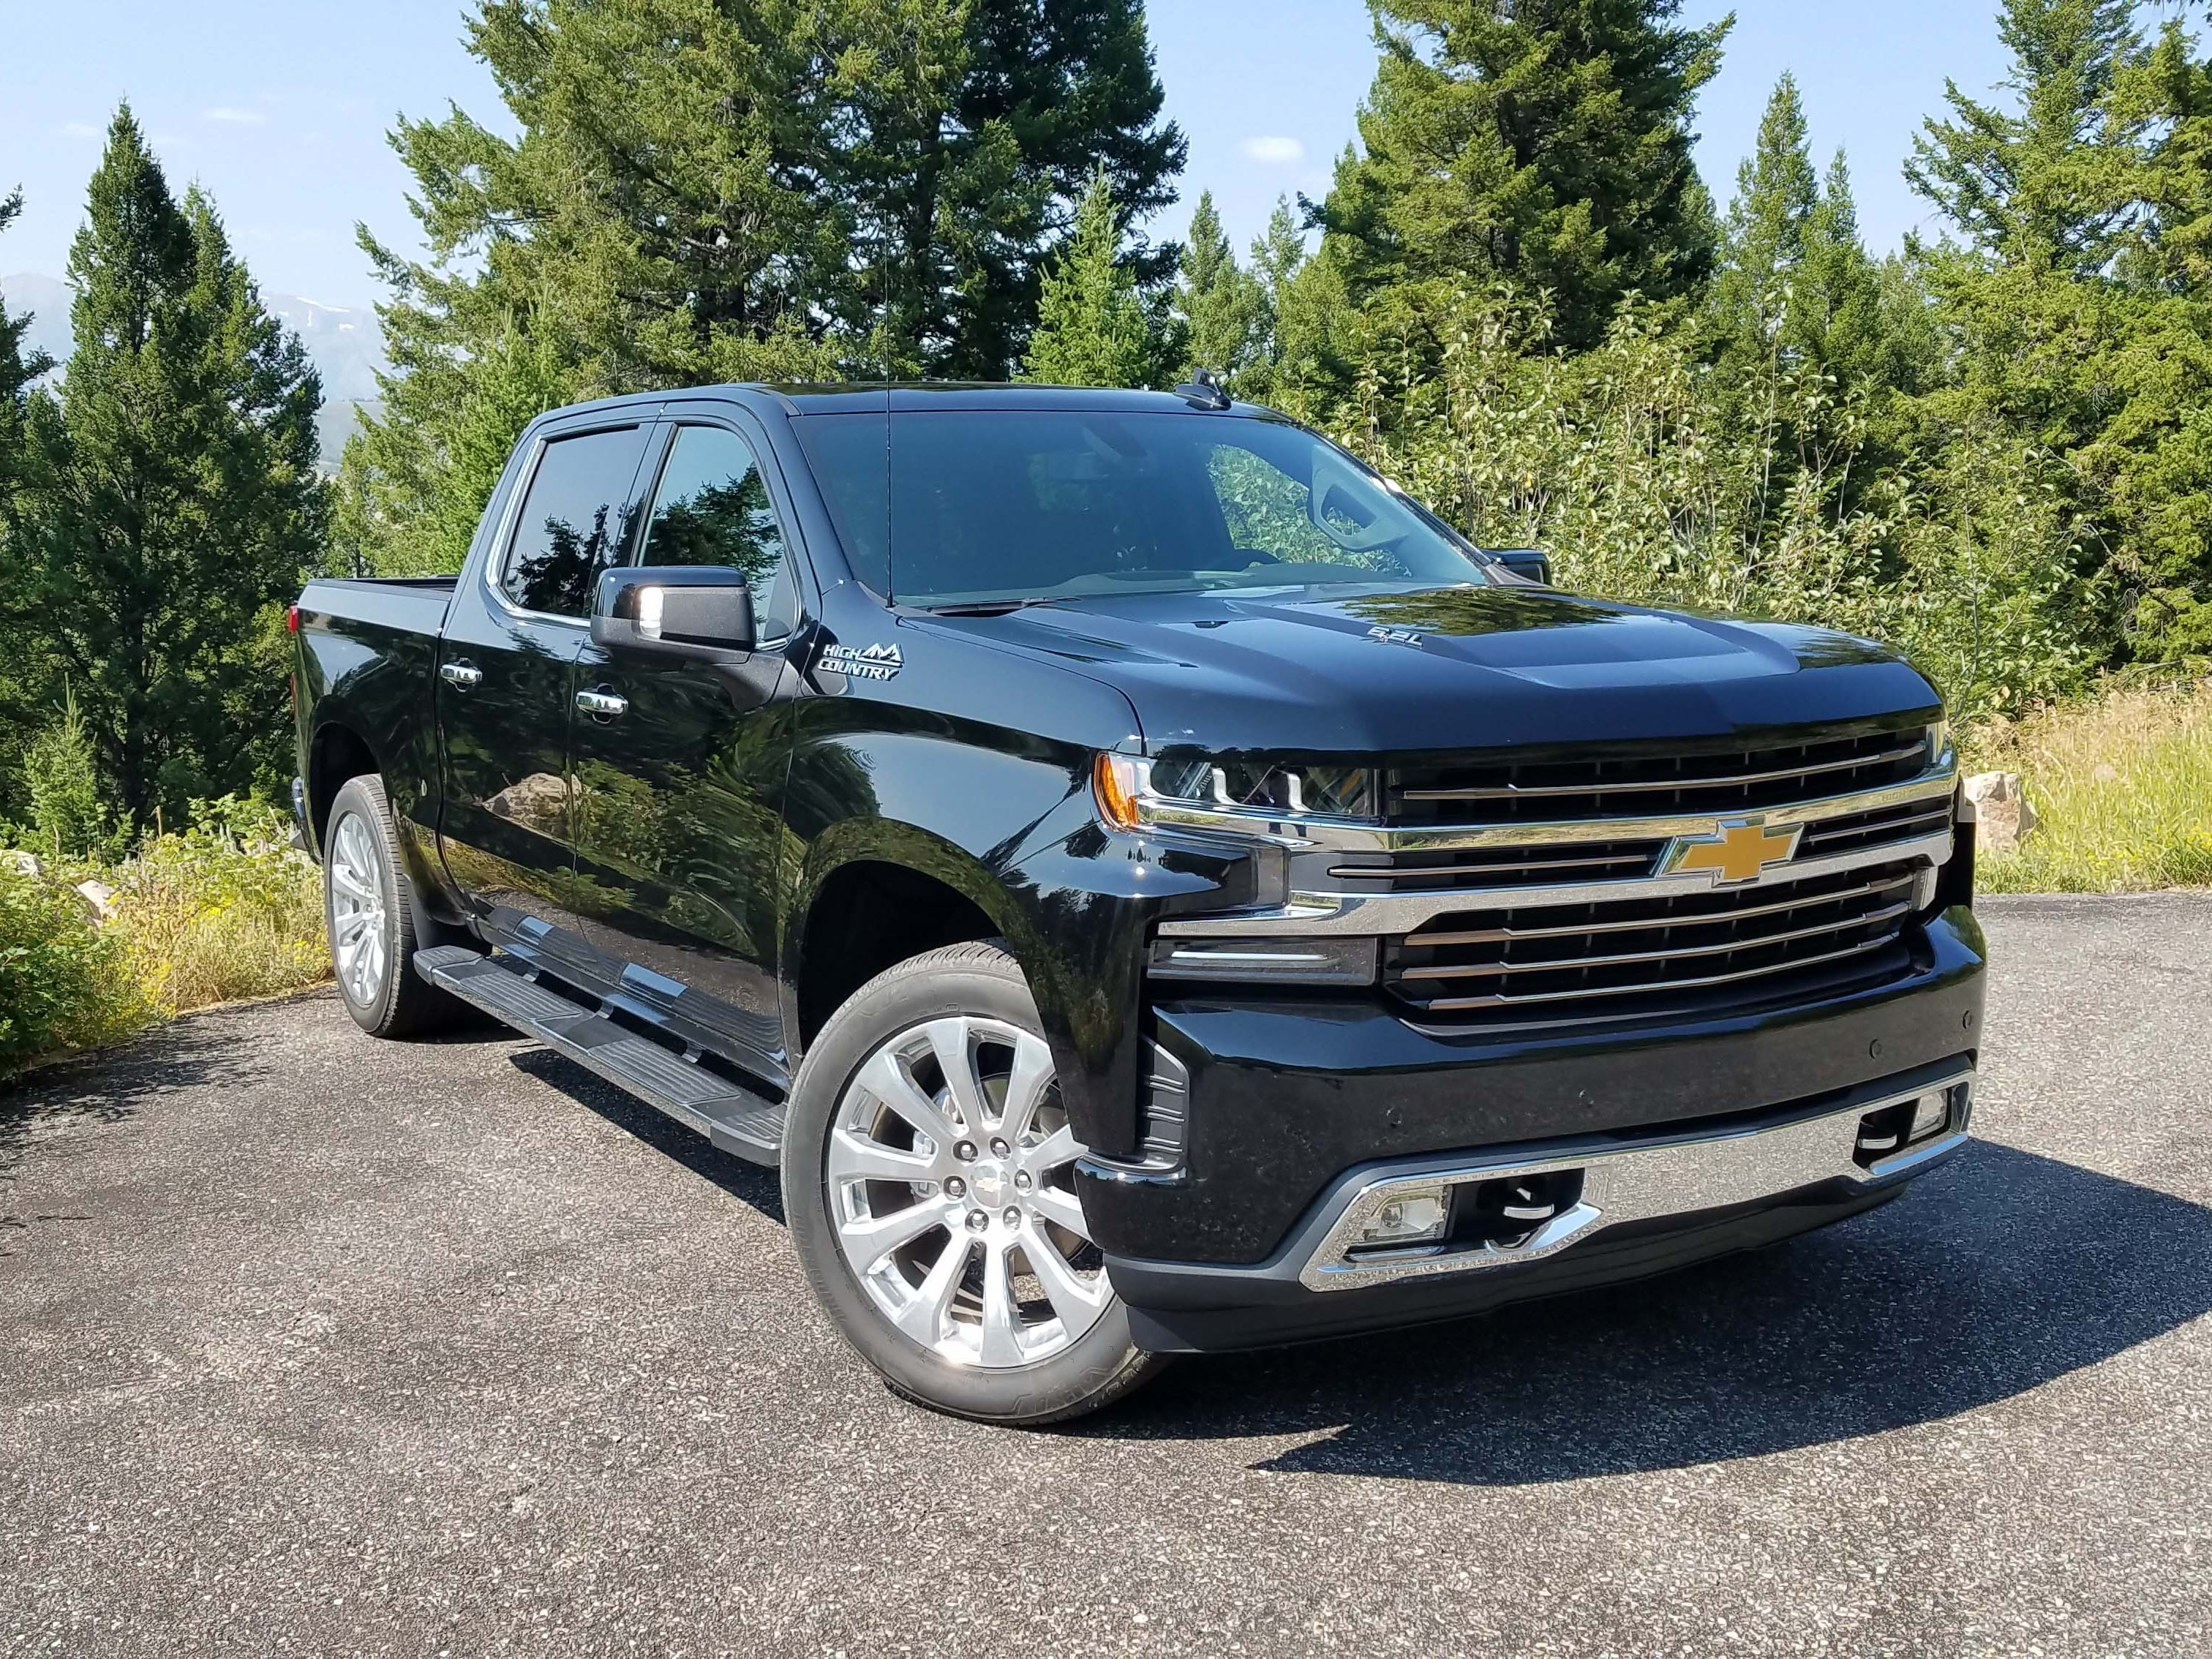 The handsome, upscale 2019 Chevy Silverado High Country trim starts at $56K and can be had in the $62,290 model with all the trimmings shown here.